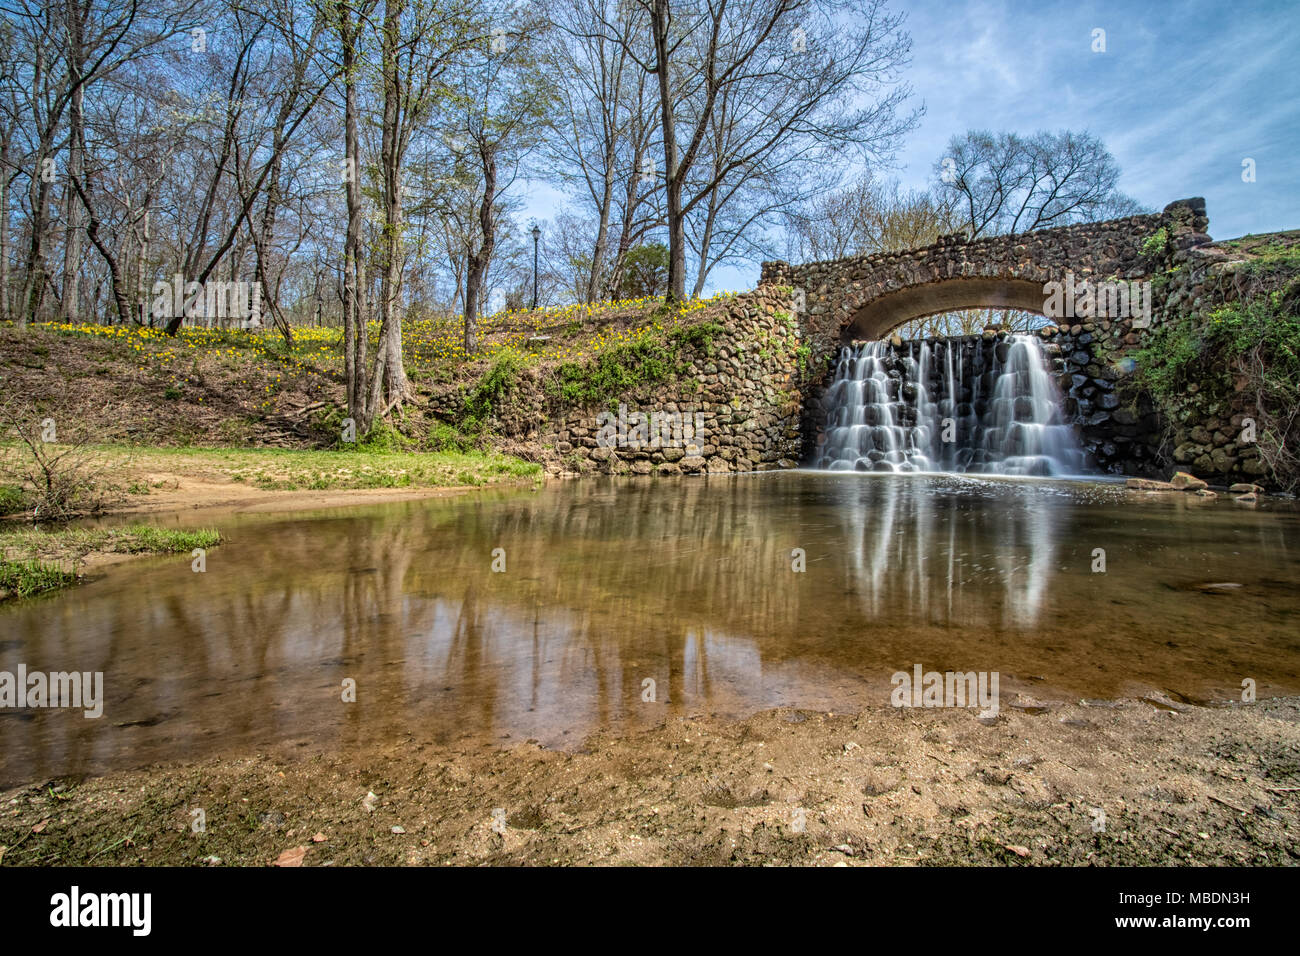 Waterfall Bridge at Reynolda Gardens in Winston-Salem, North ...